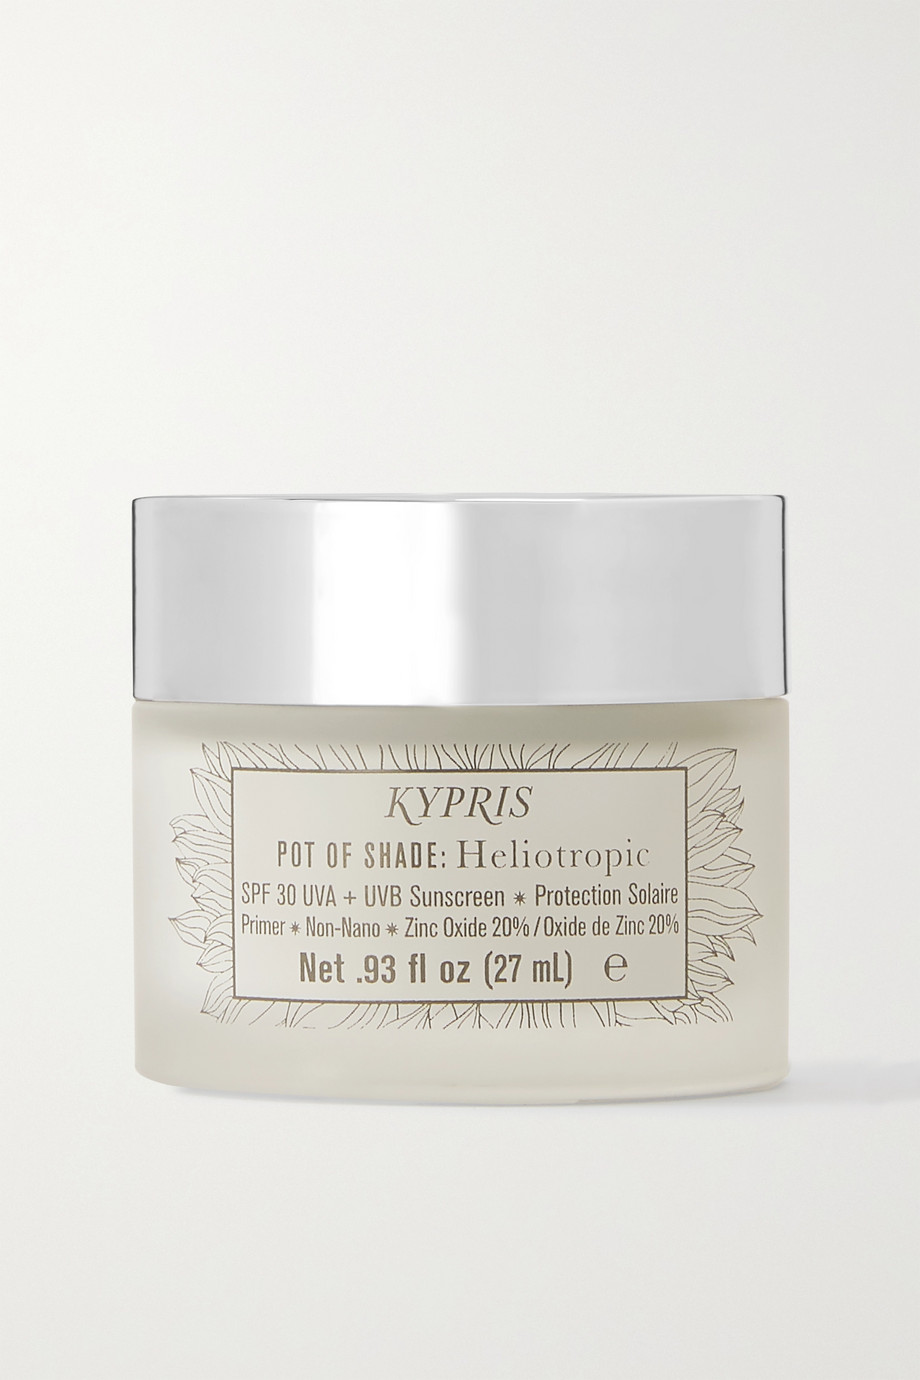 Kypris Beauty Pot of Shade: Heliotropic LSF 30 Sunscreen & Primer, 27 ml – Sonnencreme & Primer